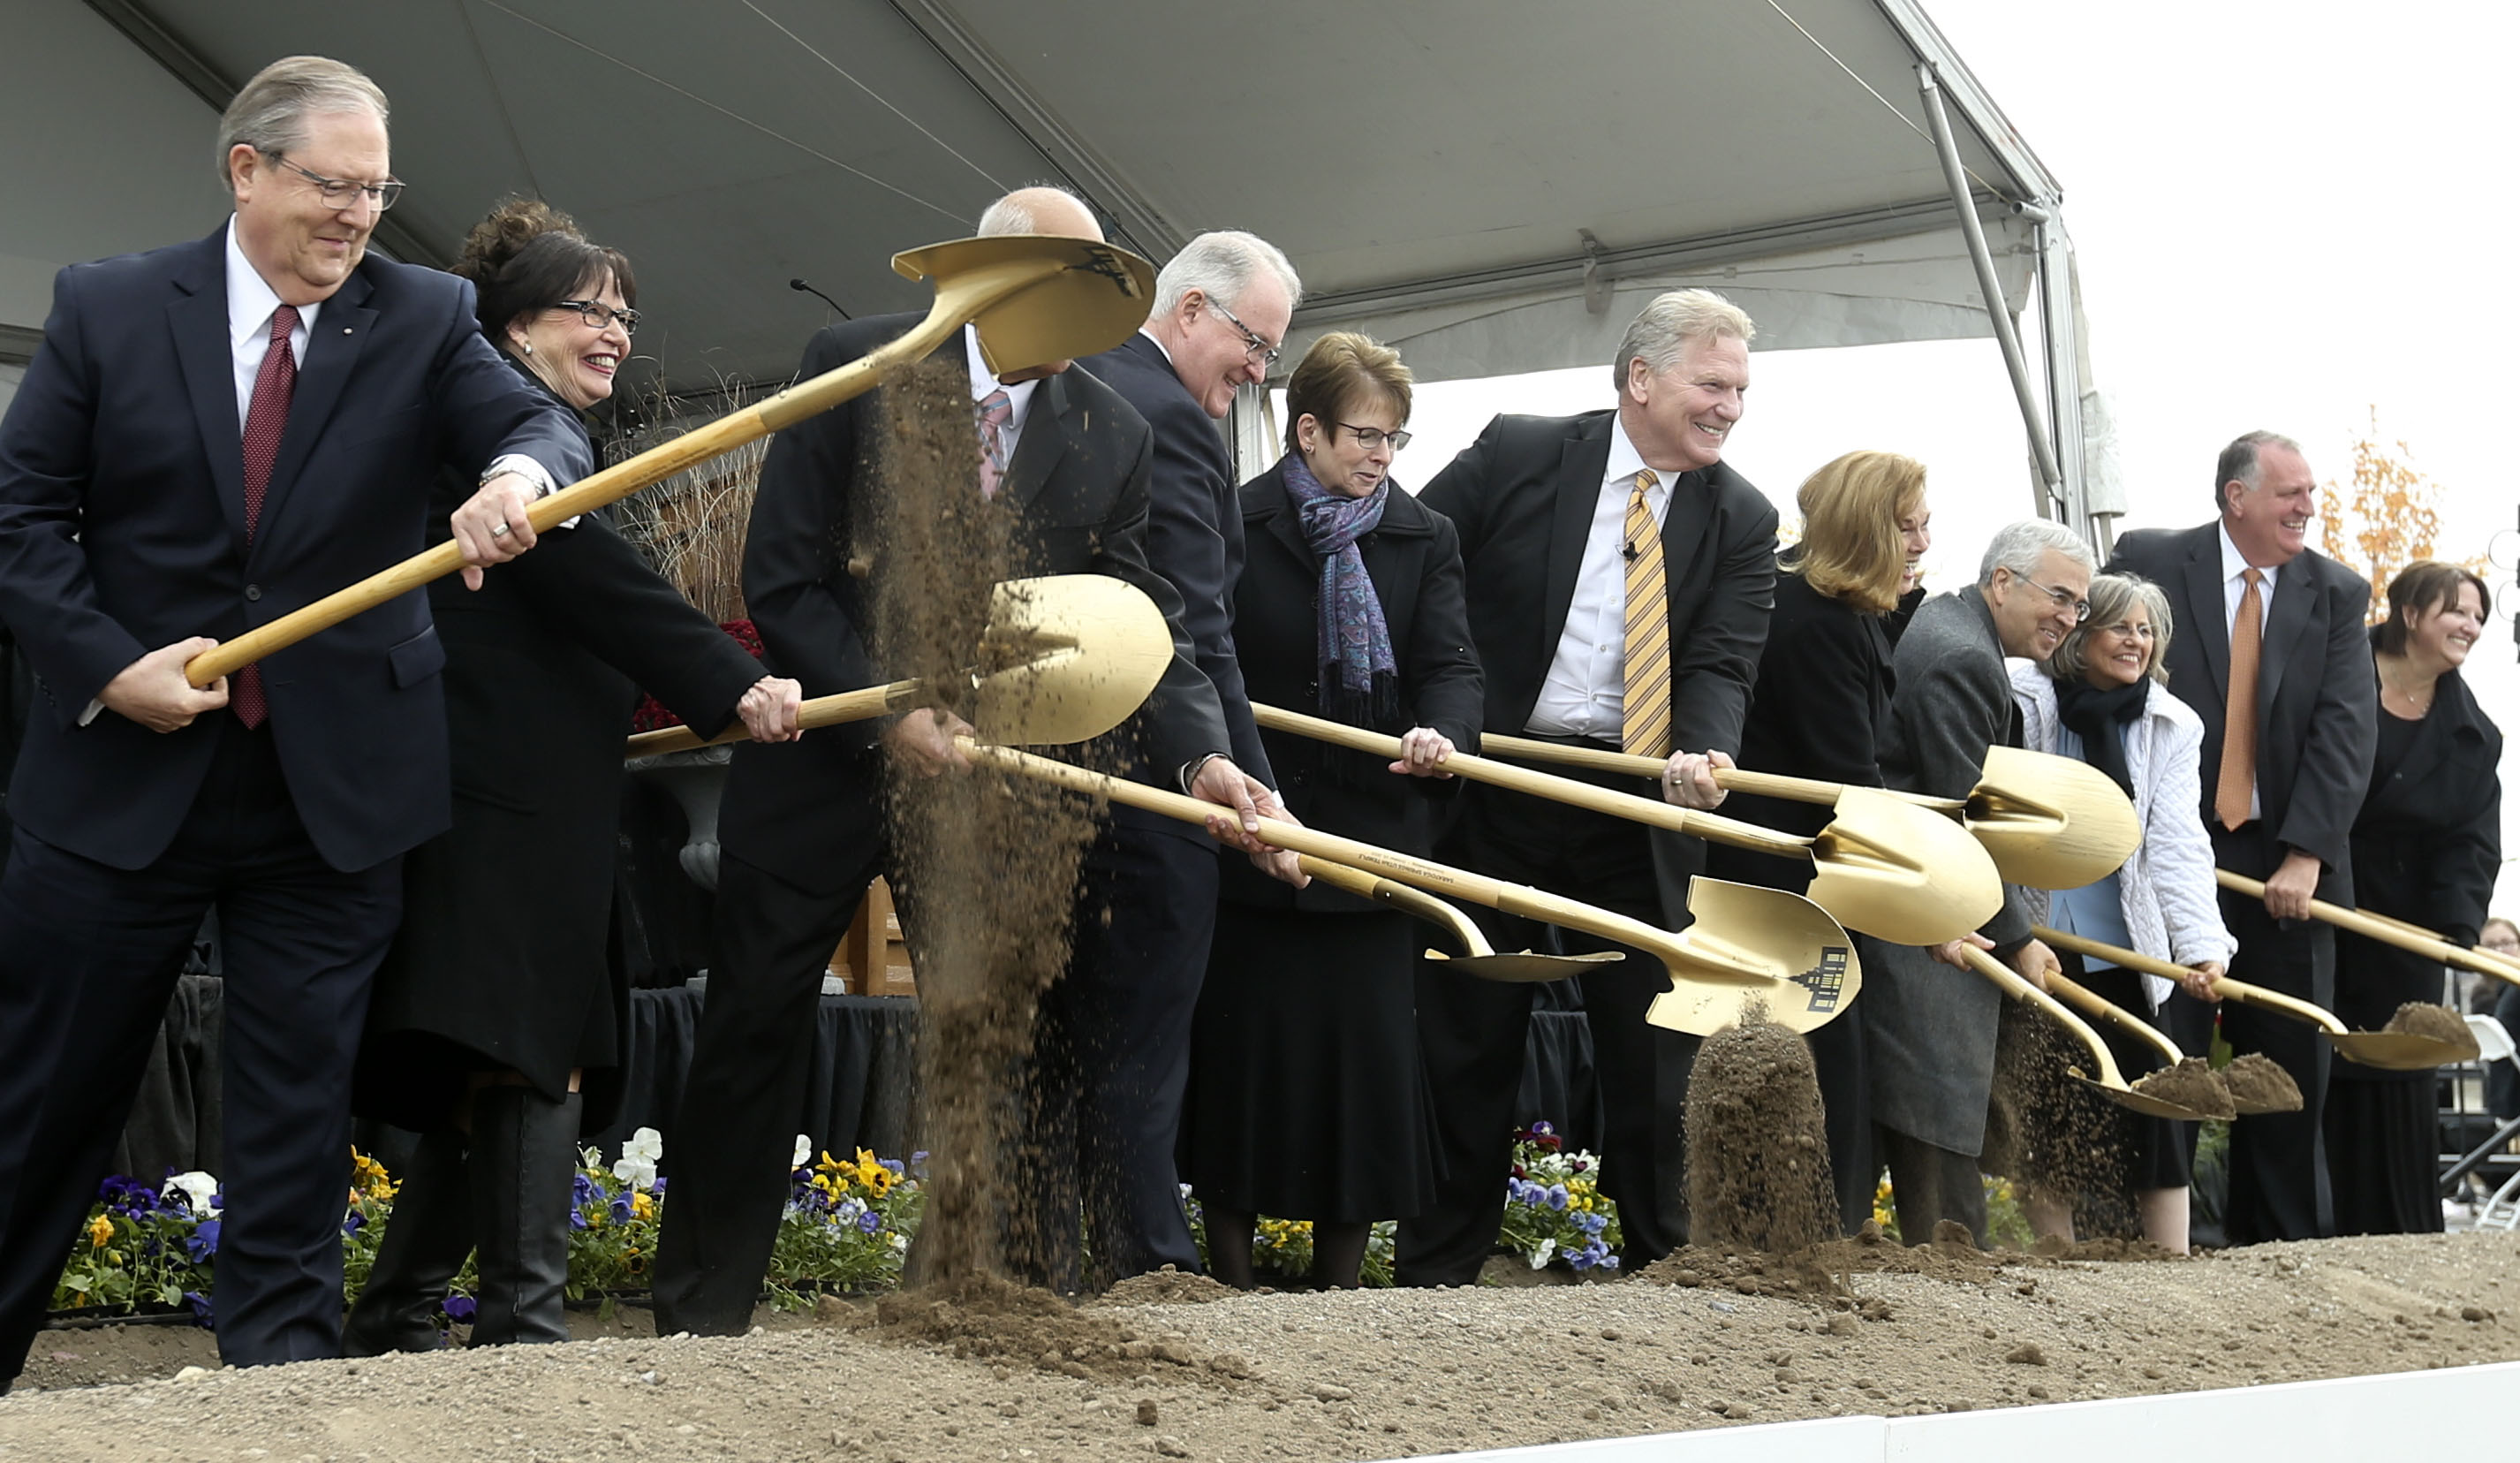 Dirt is tossed during the groundbreaking ceremony for the Saratoga Springs Utah Temple on Saturday, Oct. 19, 2019.